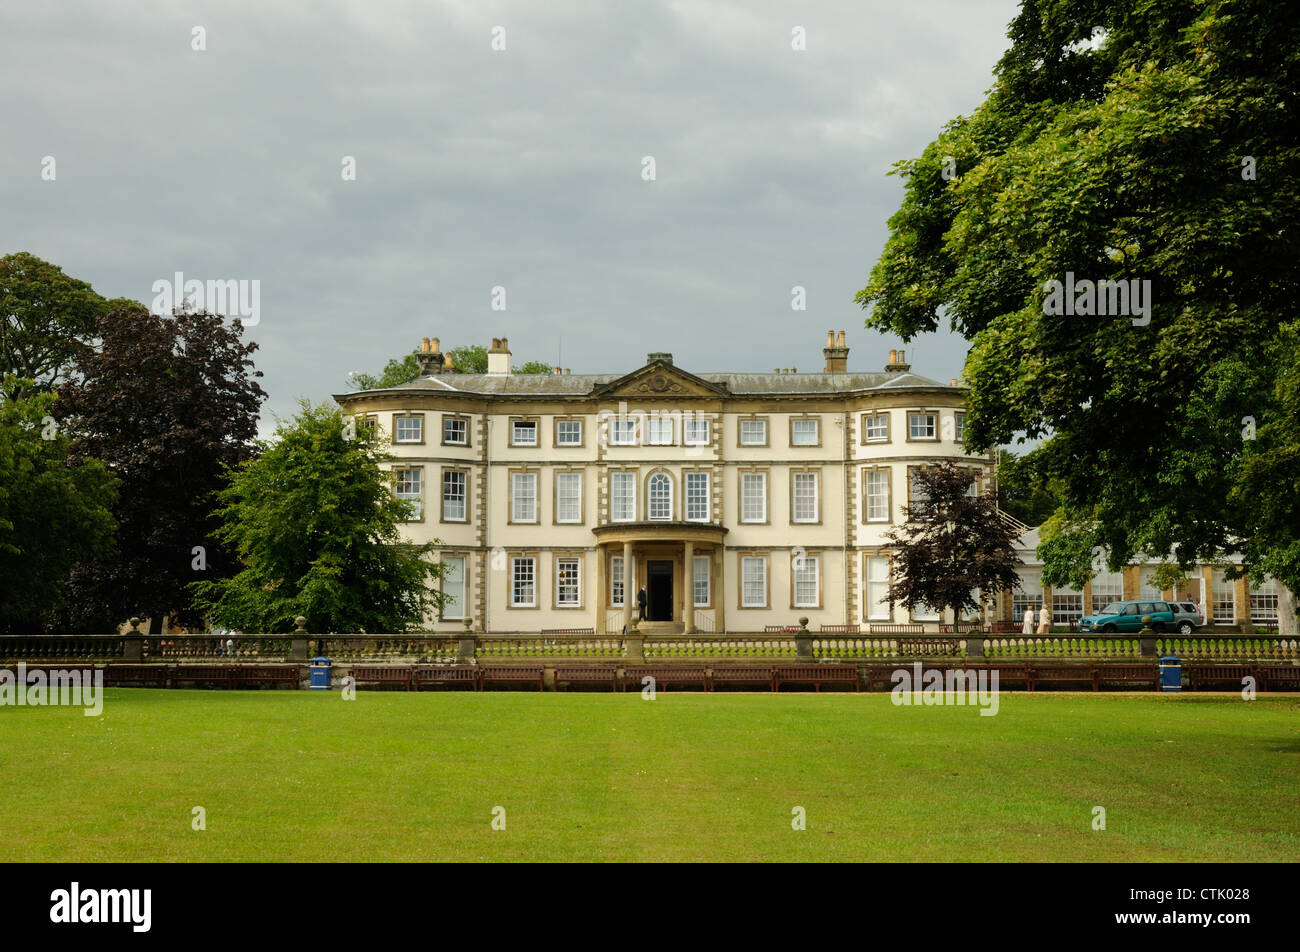 Sewerby Hall, East Yorkshire, England Stock Photo